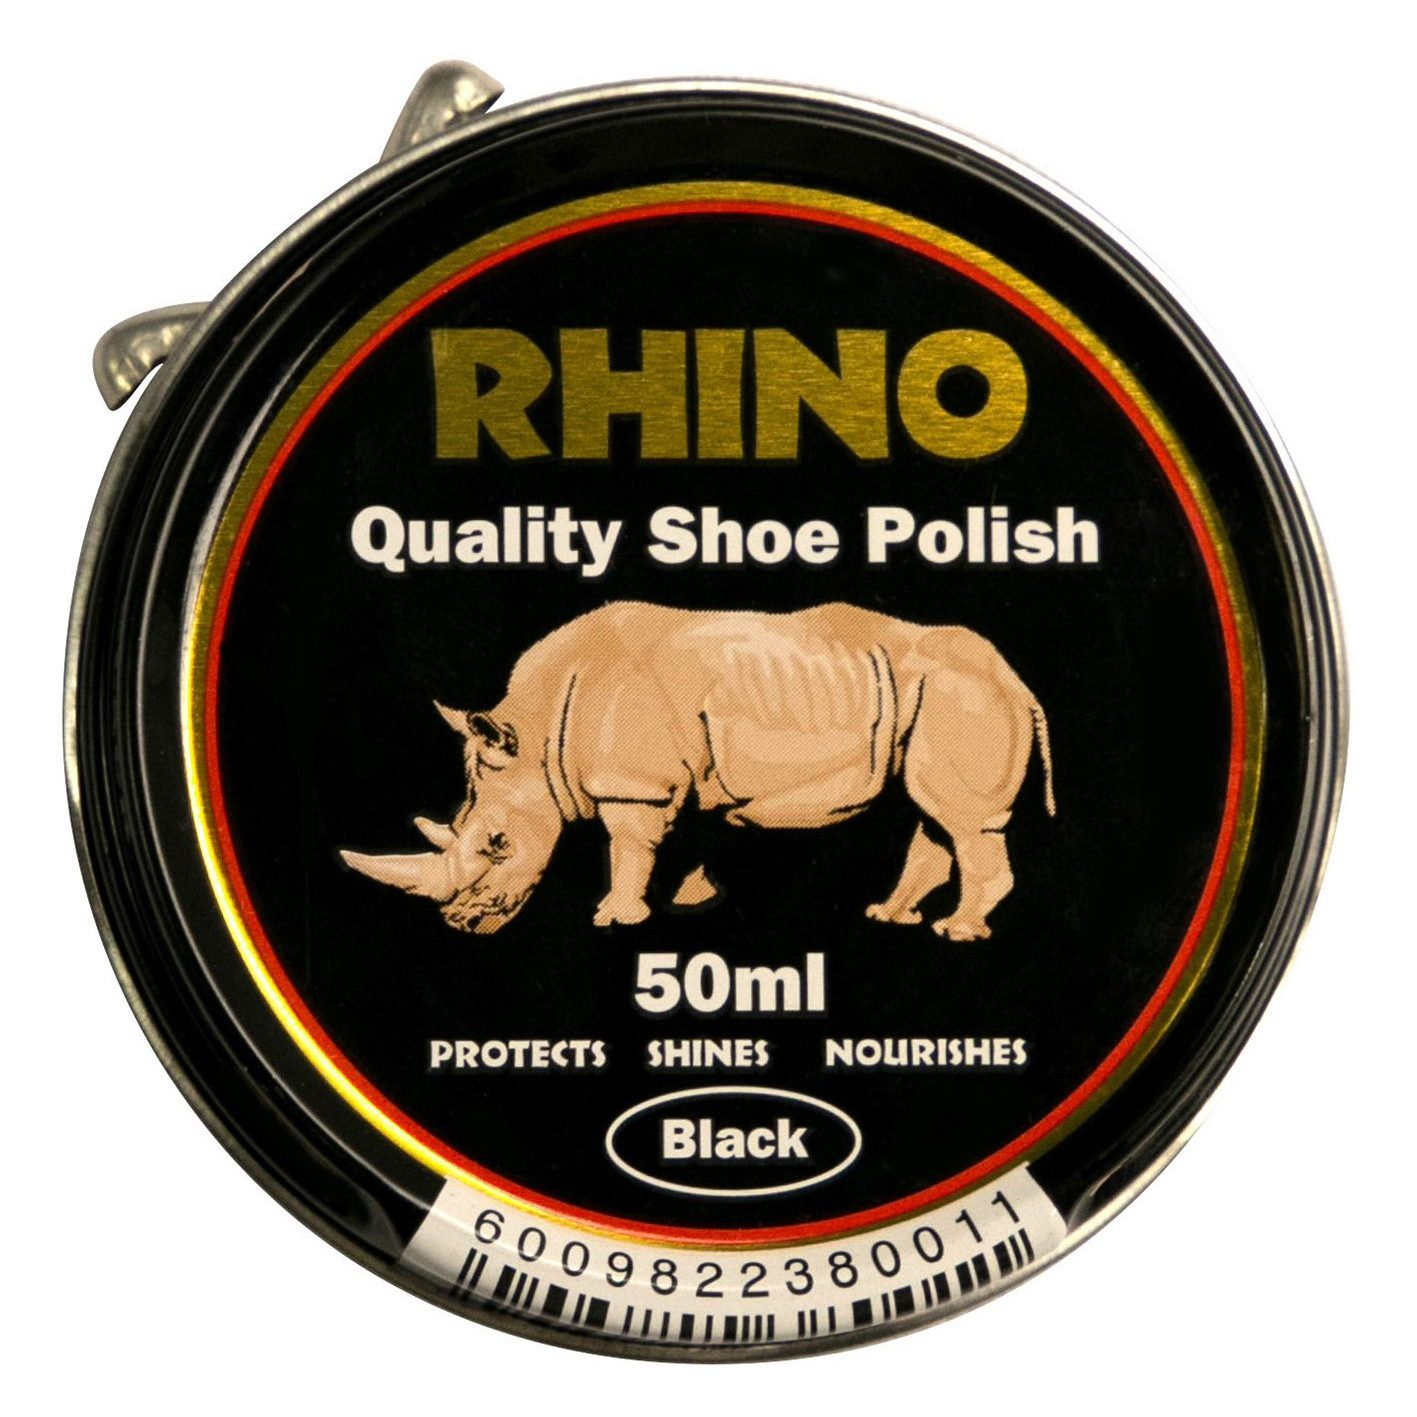 Rhino Shoe Polish Black 50ml